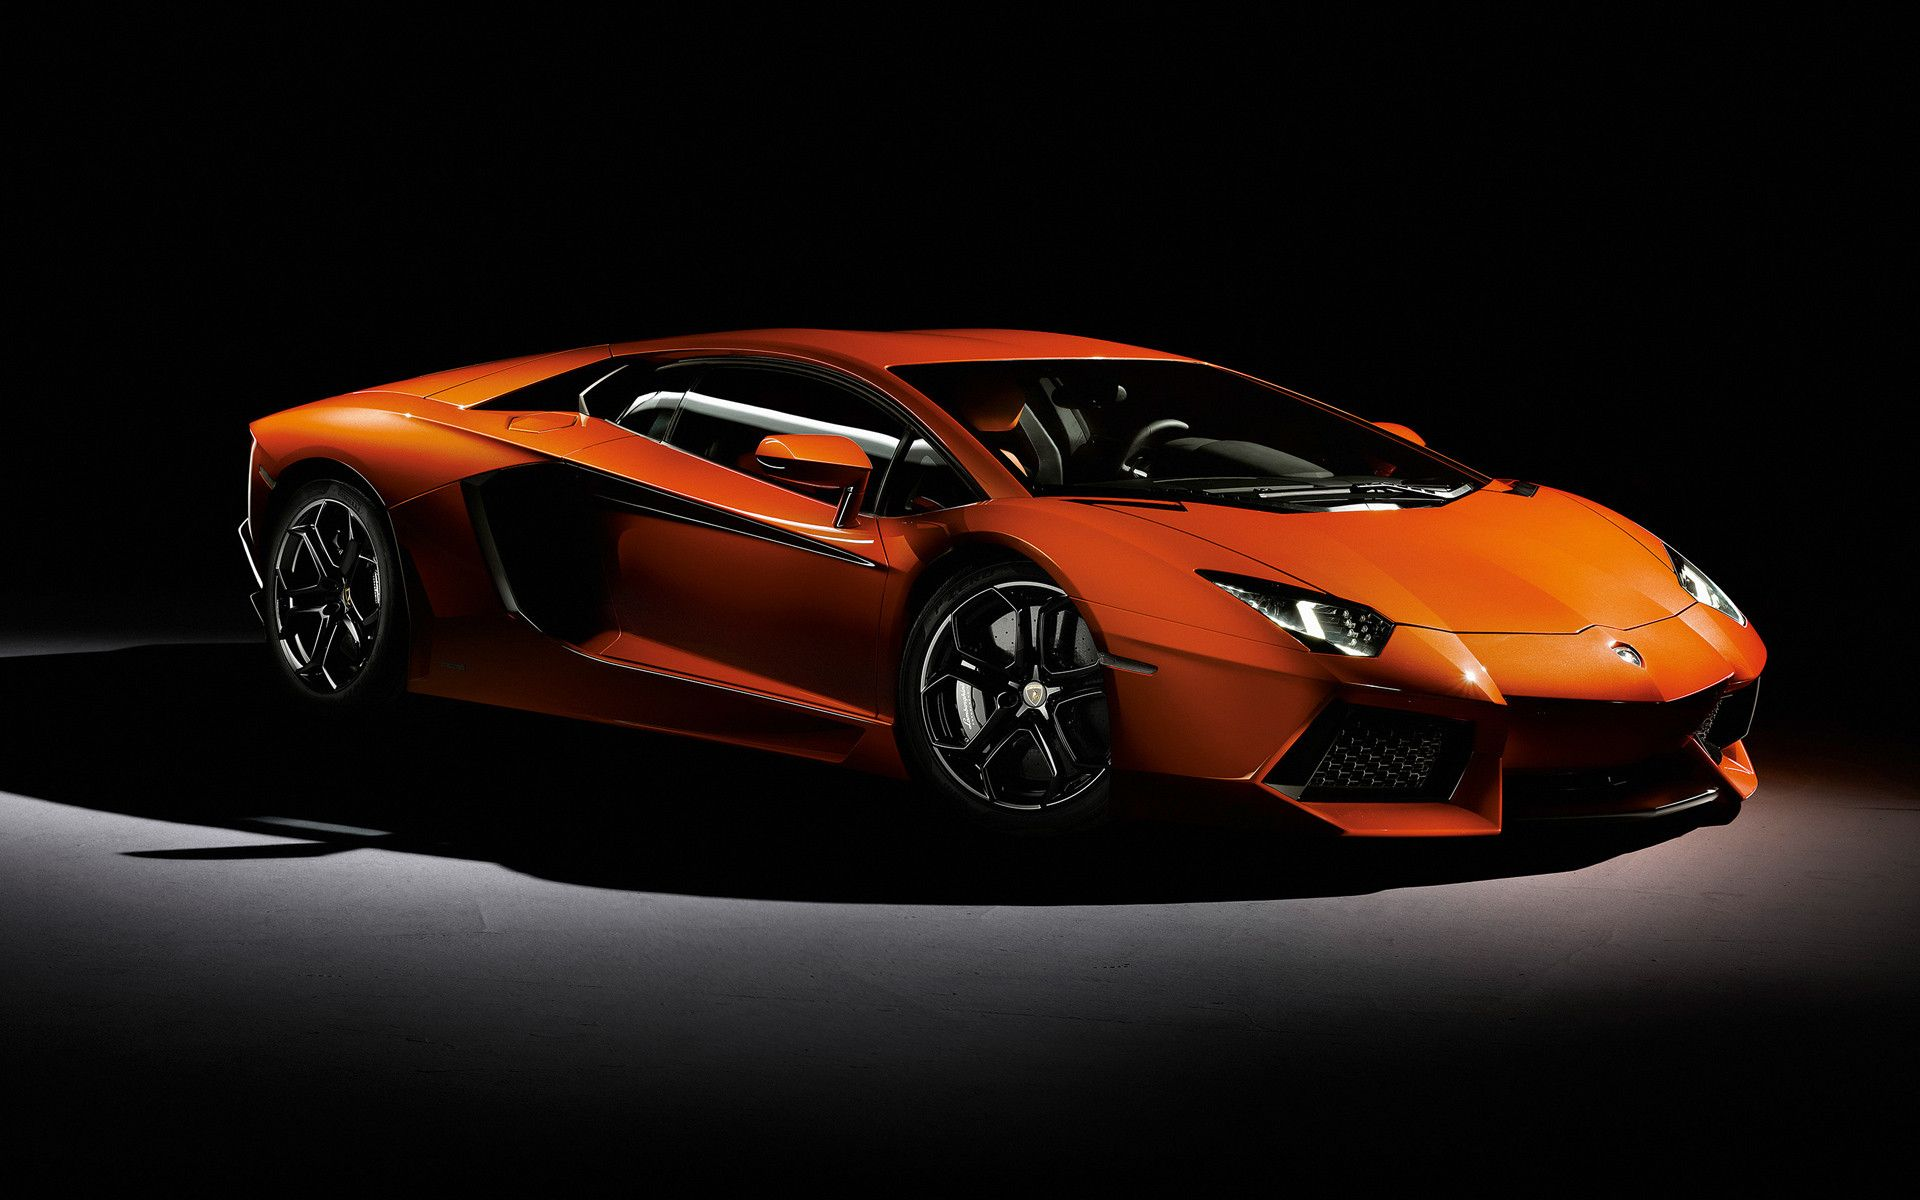 HD Lamborghini Aventador Wallpapers HD Wallpapers 1920x1200